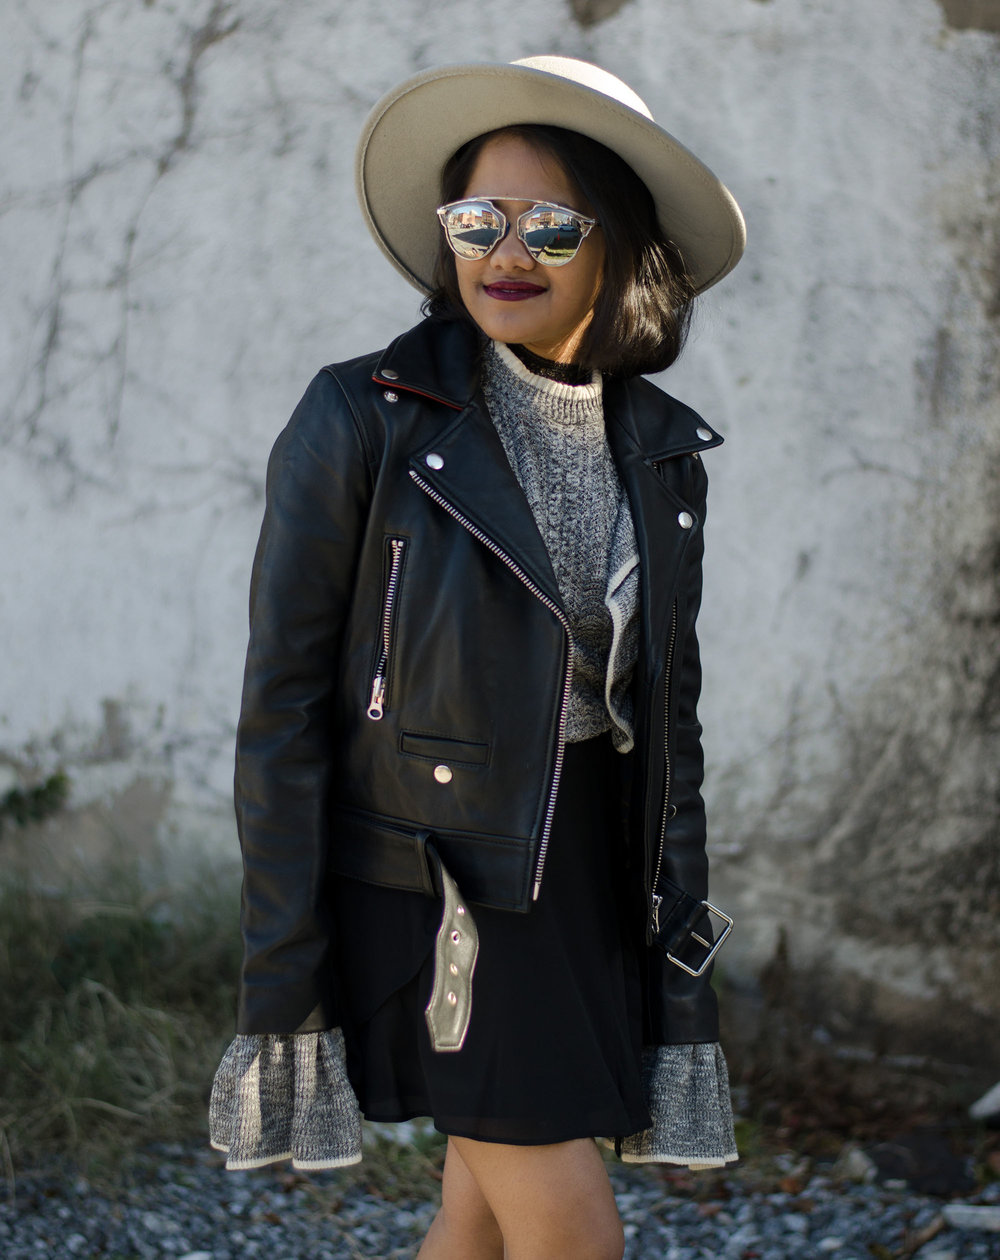 HM Grey Knit Sweater Bell Sleeves and Ruffles with Nasty Gal Guns of Brixton Leather Jacket and Grey Boater Hat